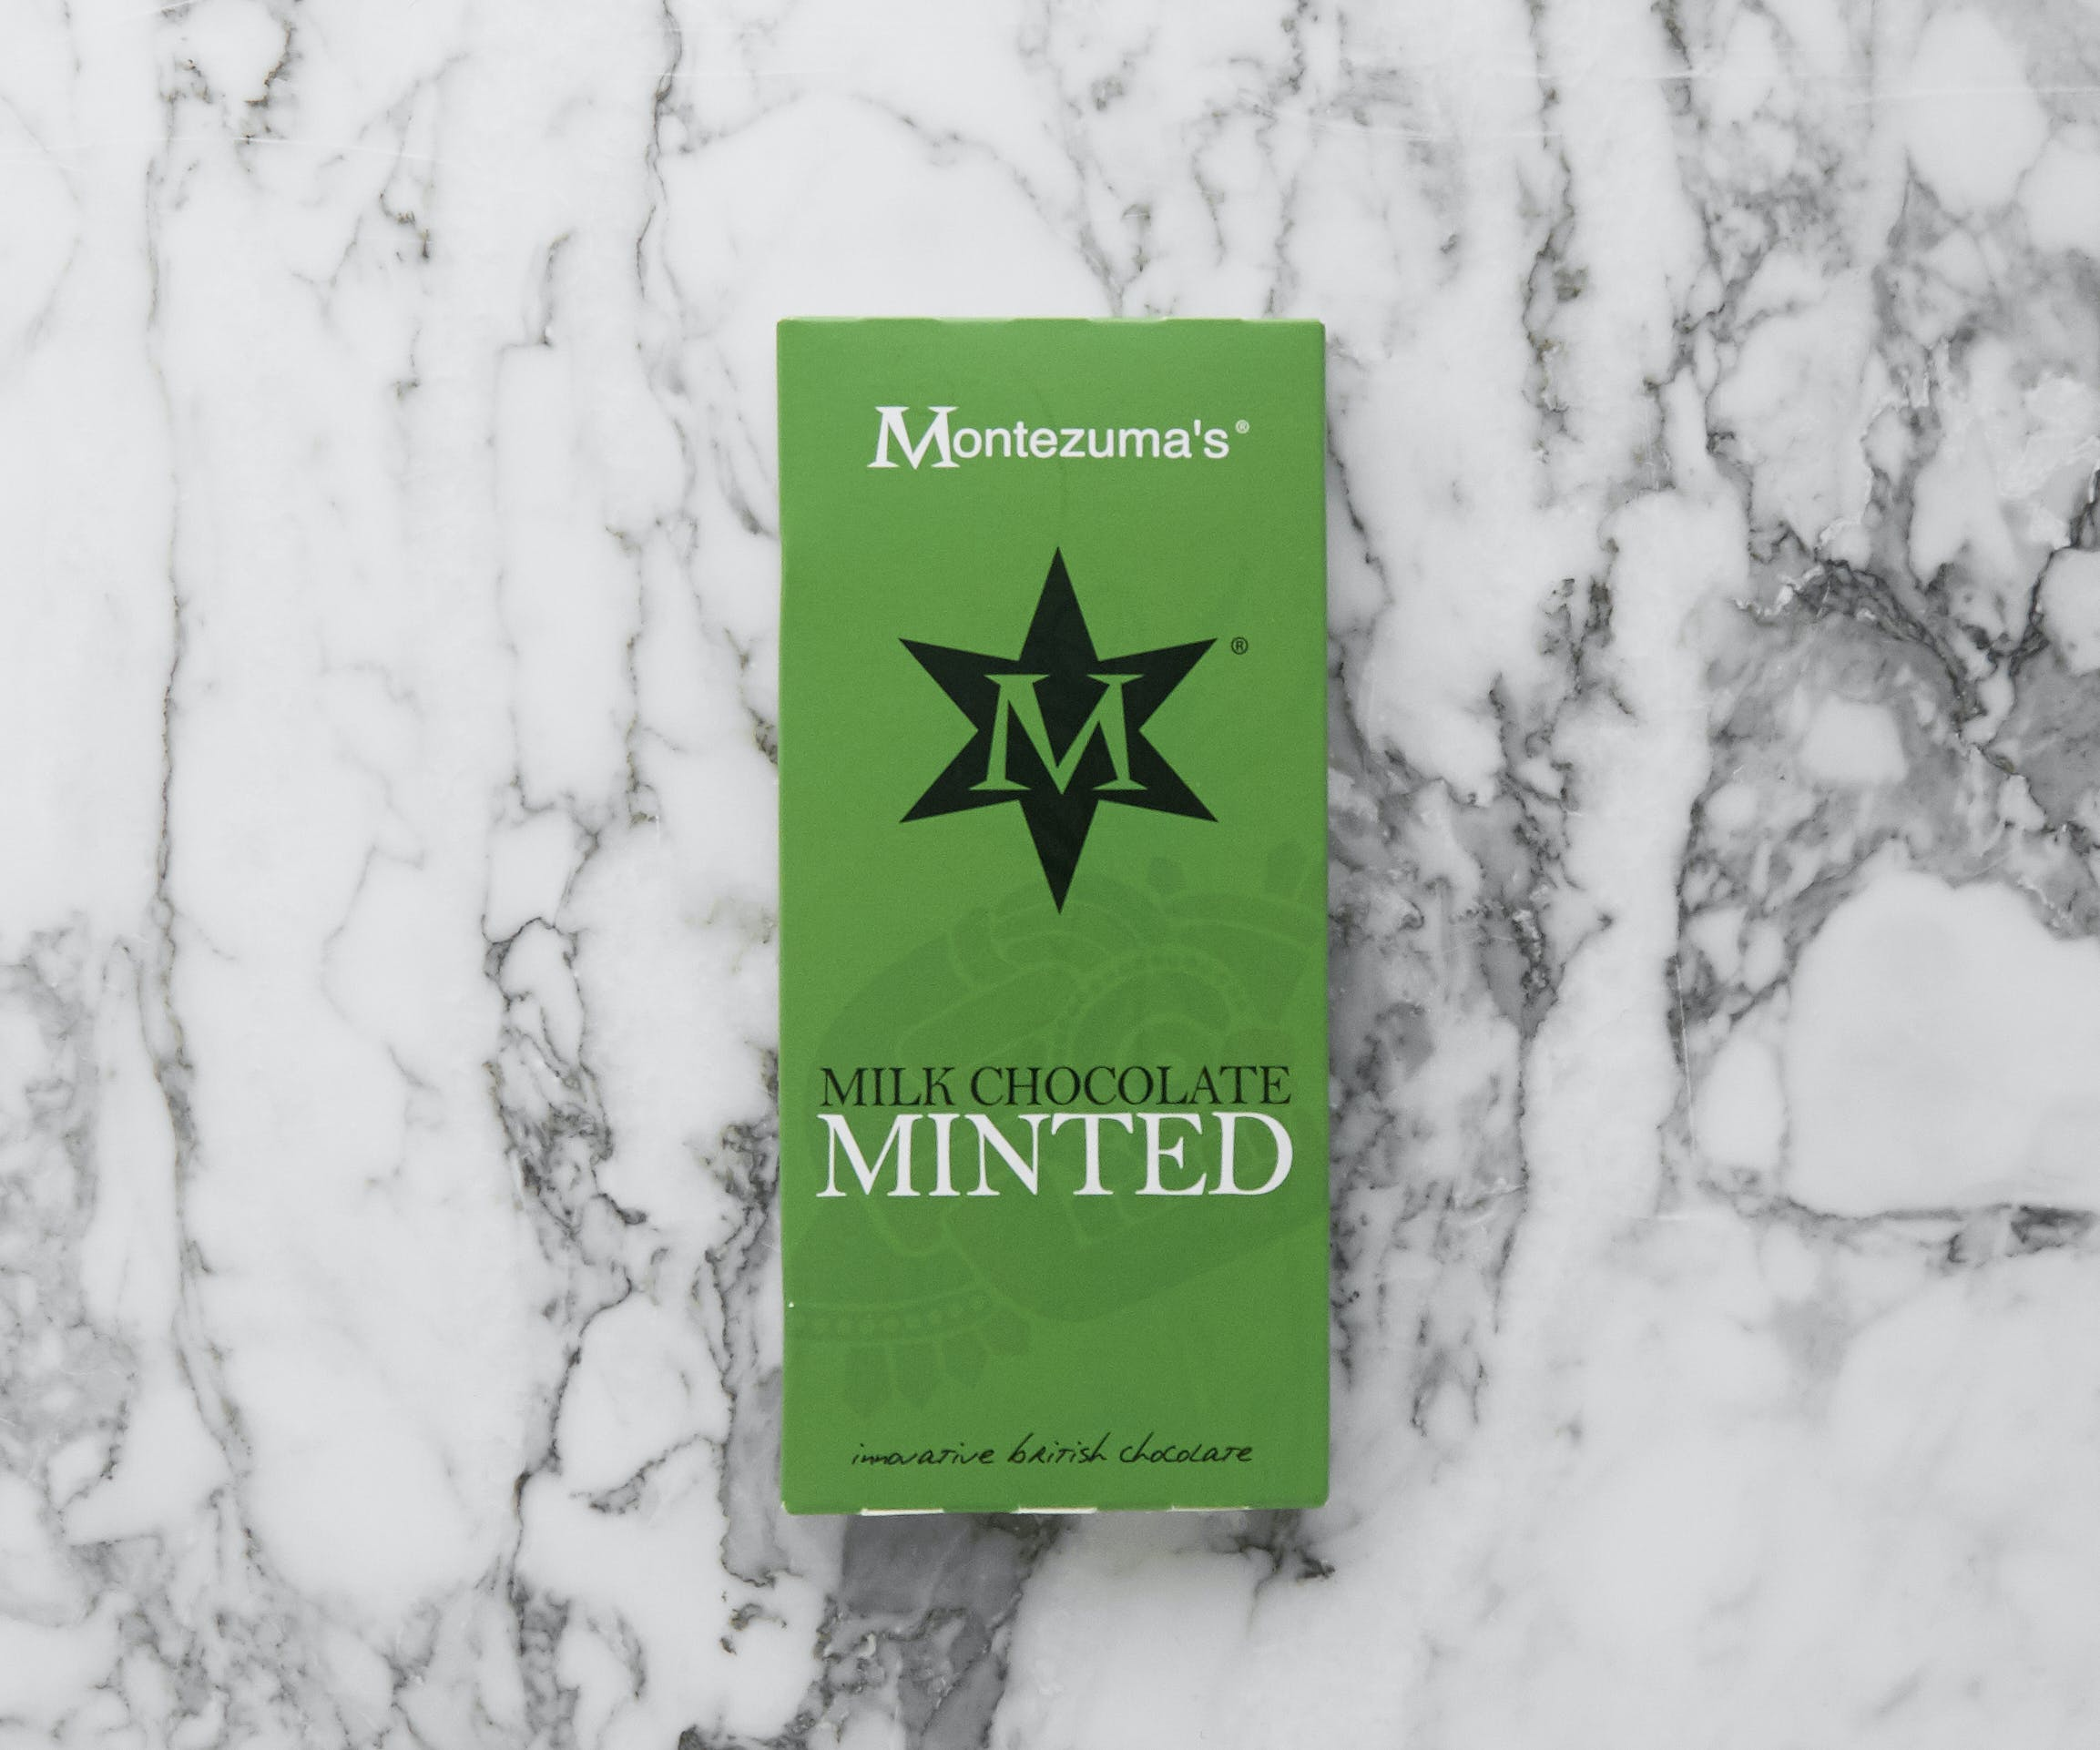 Minted Milk Chocolate Bar